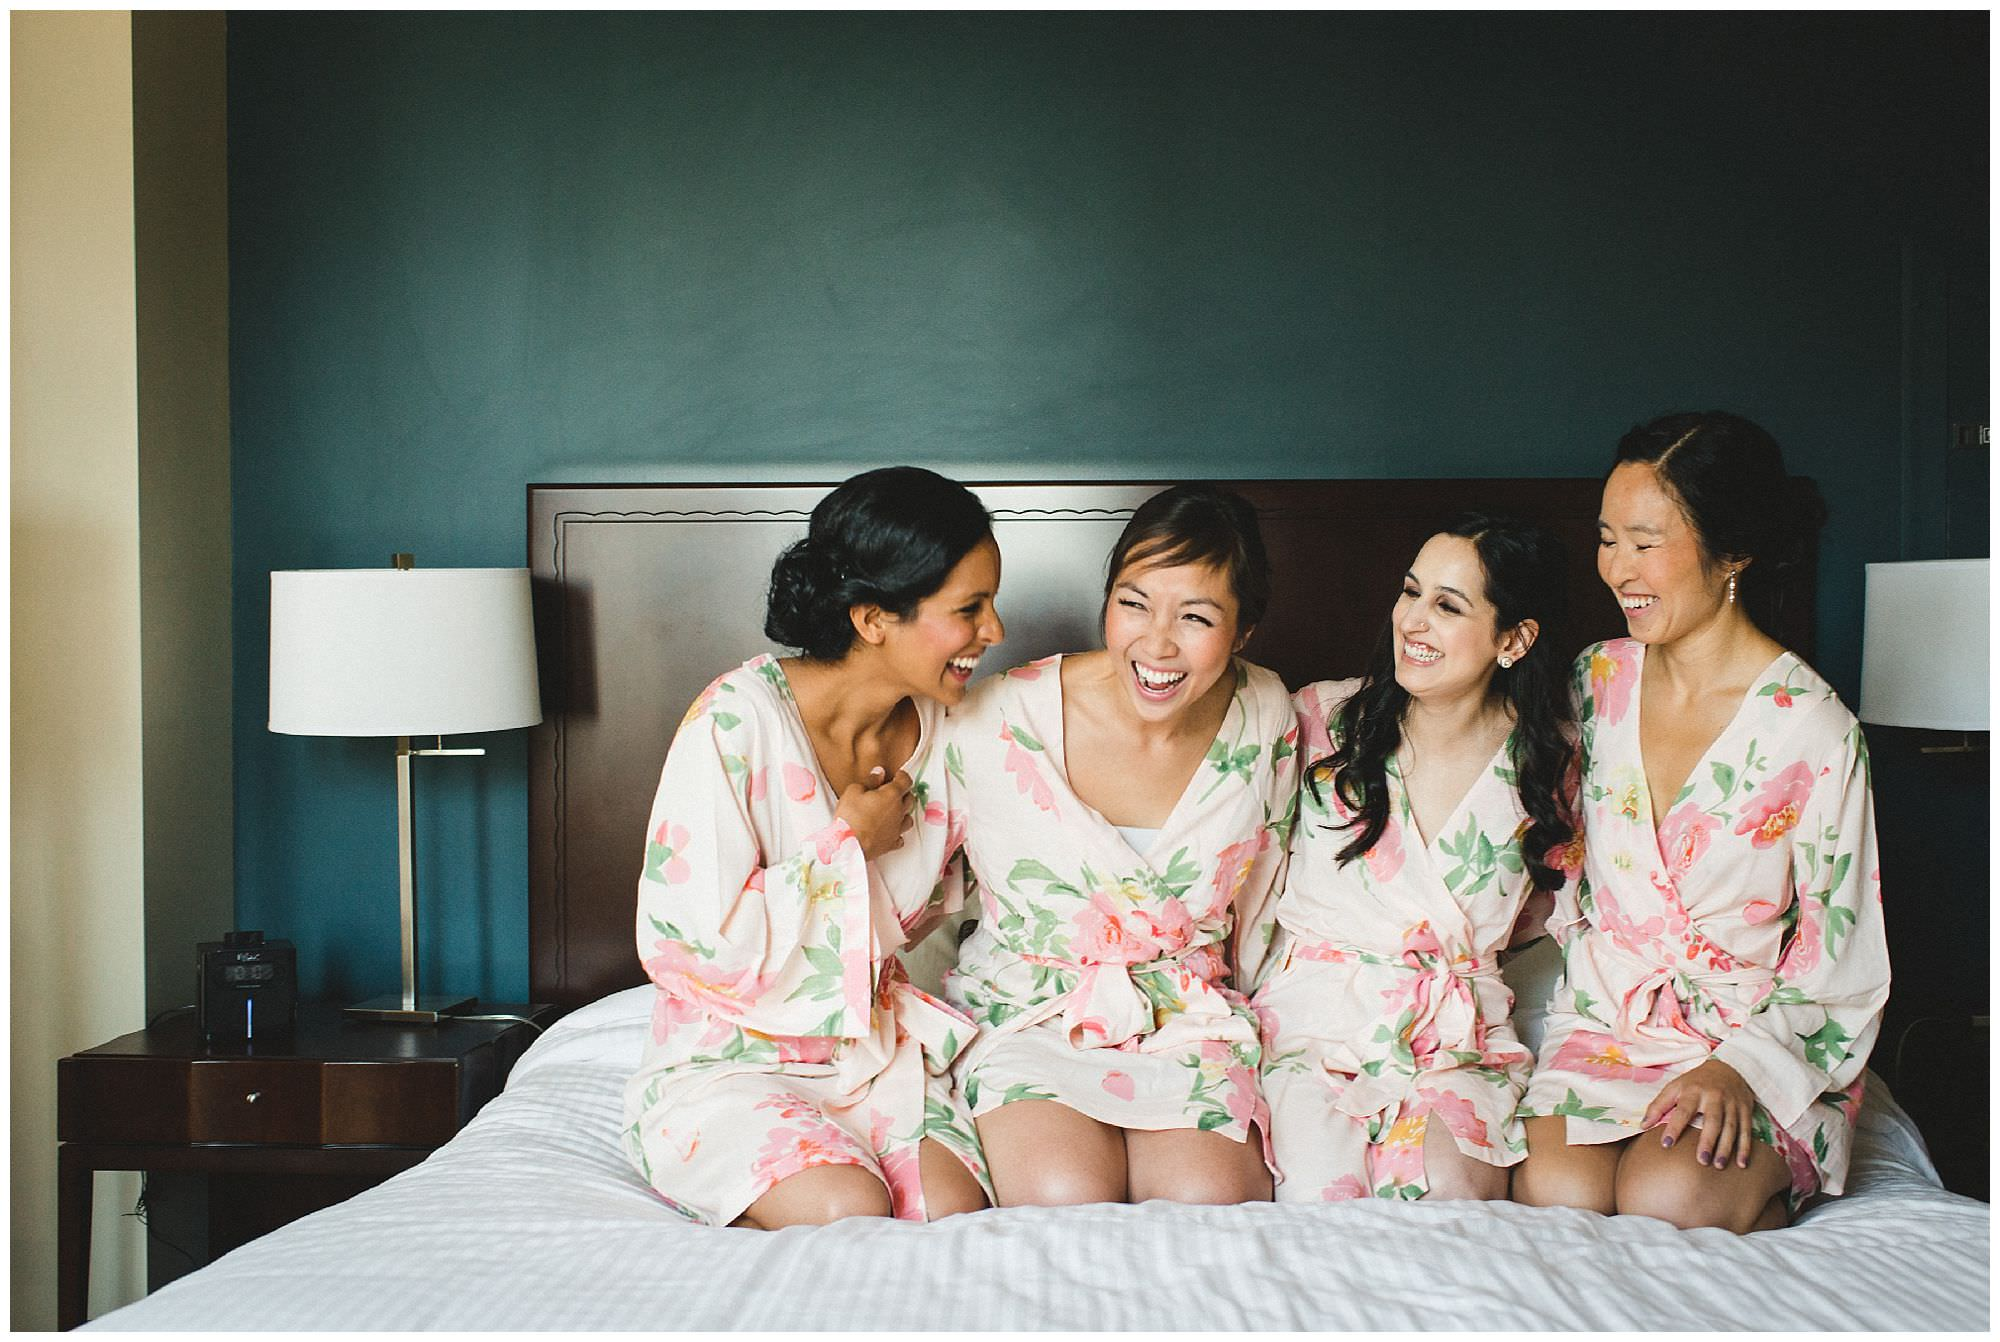 Chinese bride and bridesmaids laugh on bed wearing matching robes at Pan Pacific Hotel in Vancouver by candid wedding photographer Ronnie Lee Hill Photography